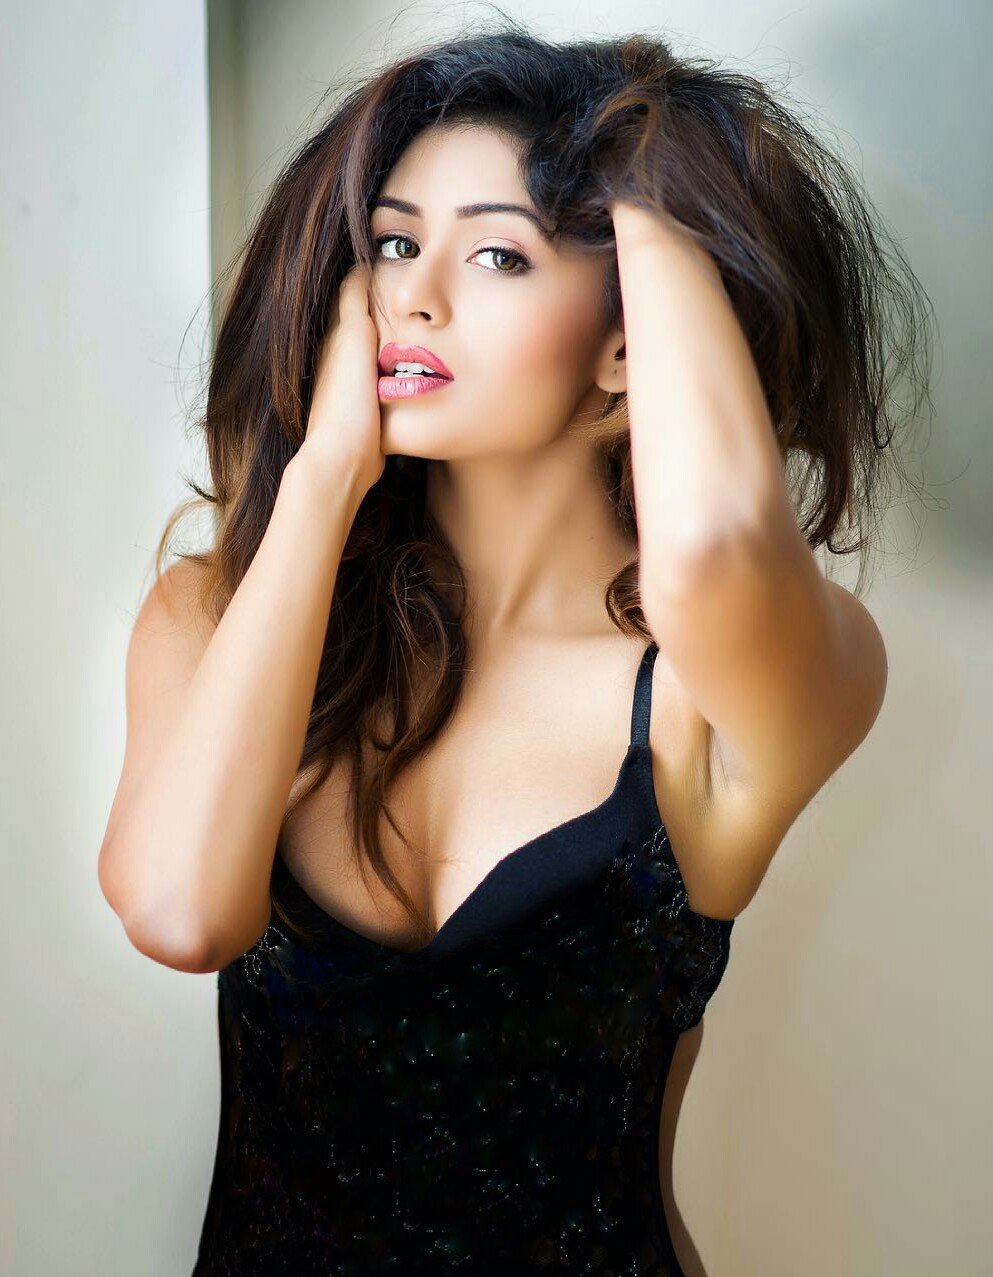 Hot and sexy bengali girls